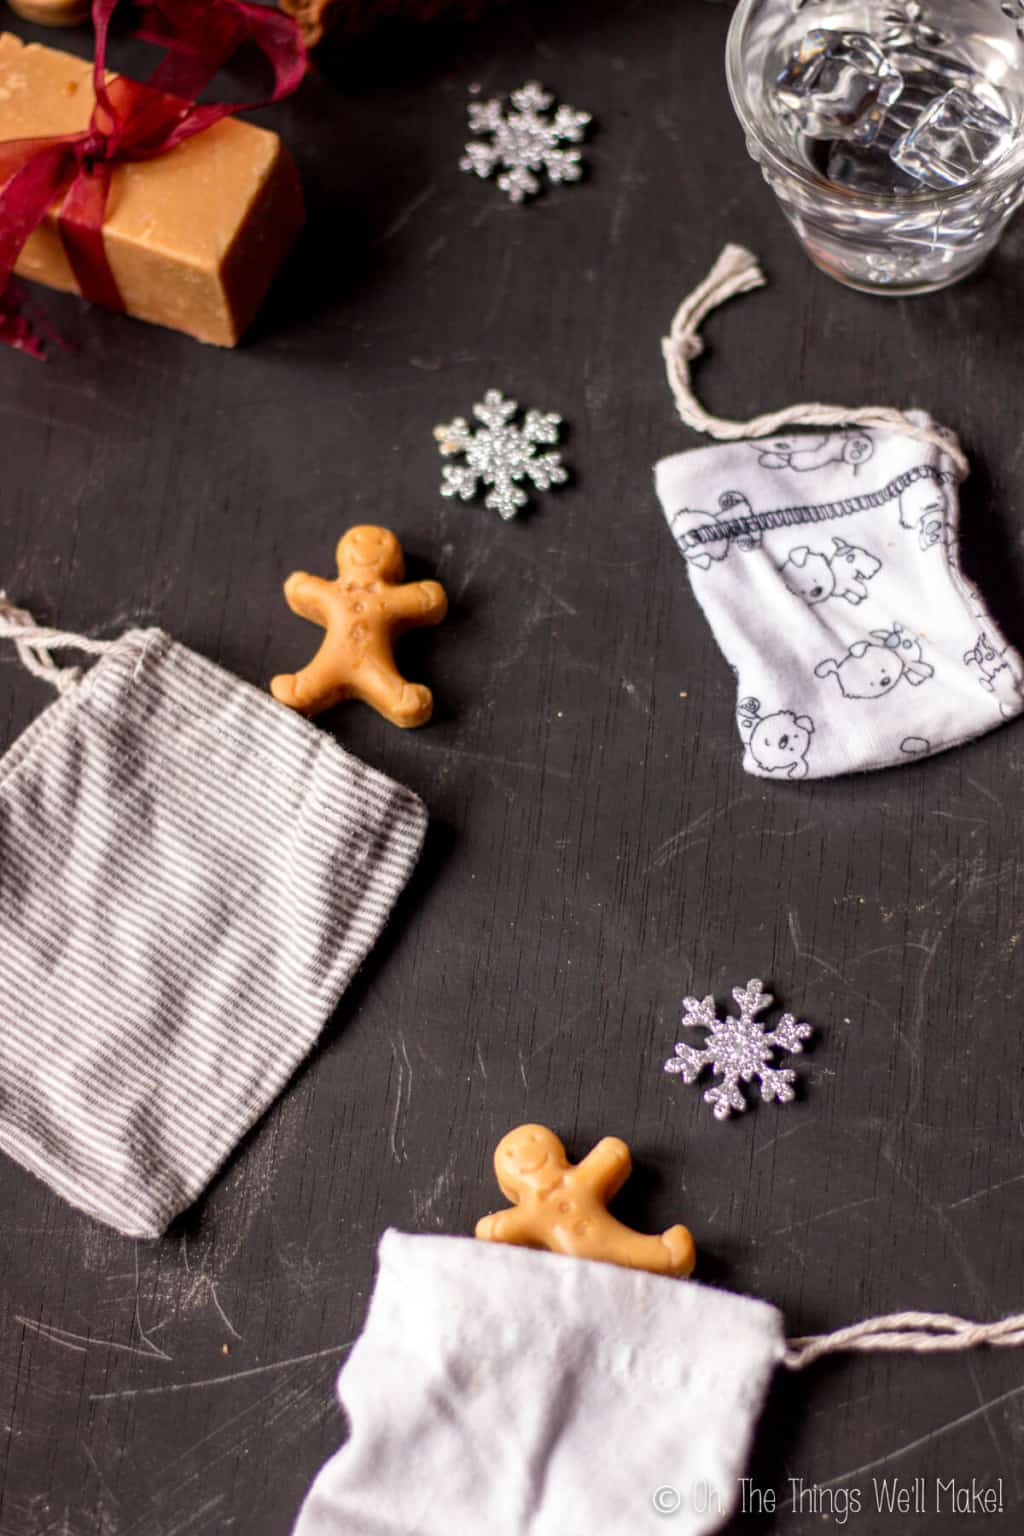 Three pouches laid on a black surface with some snowflake and gingerbread decor around. From top to bottom: white with dog print pouch, striped pouch,  and white pouch.